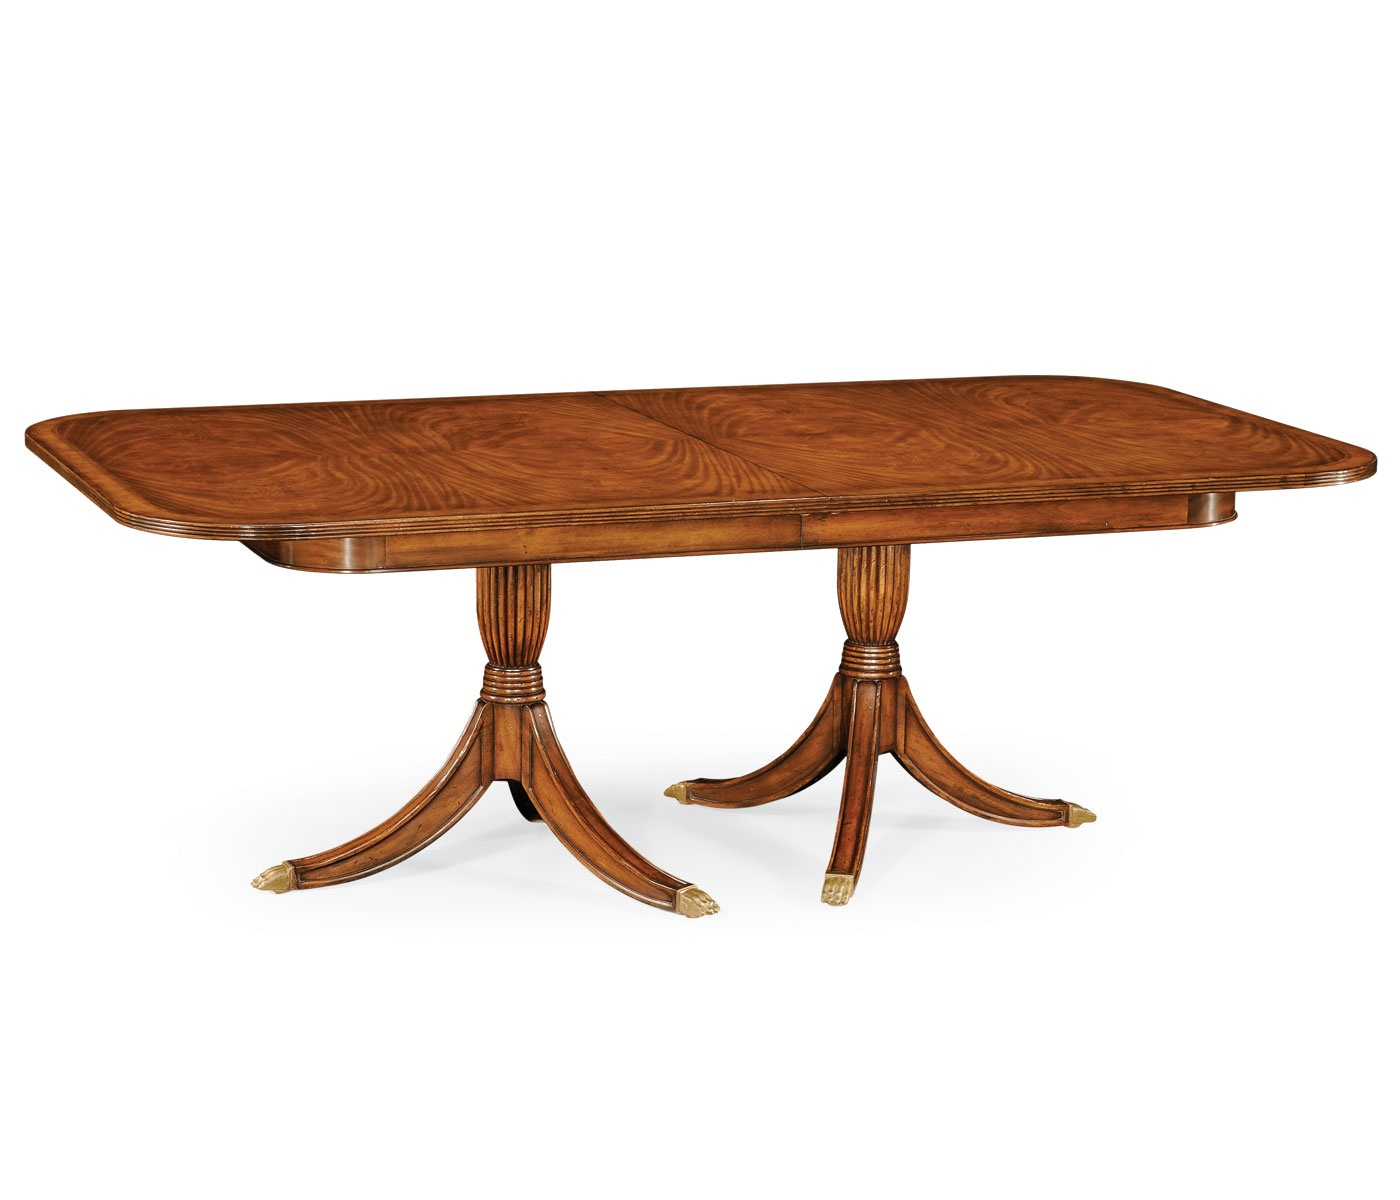 8 12 seater walnut extending dining table swanky interiors for 12 seater oval dining table